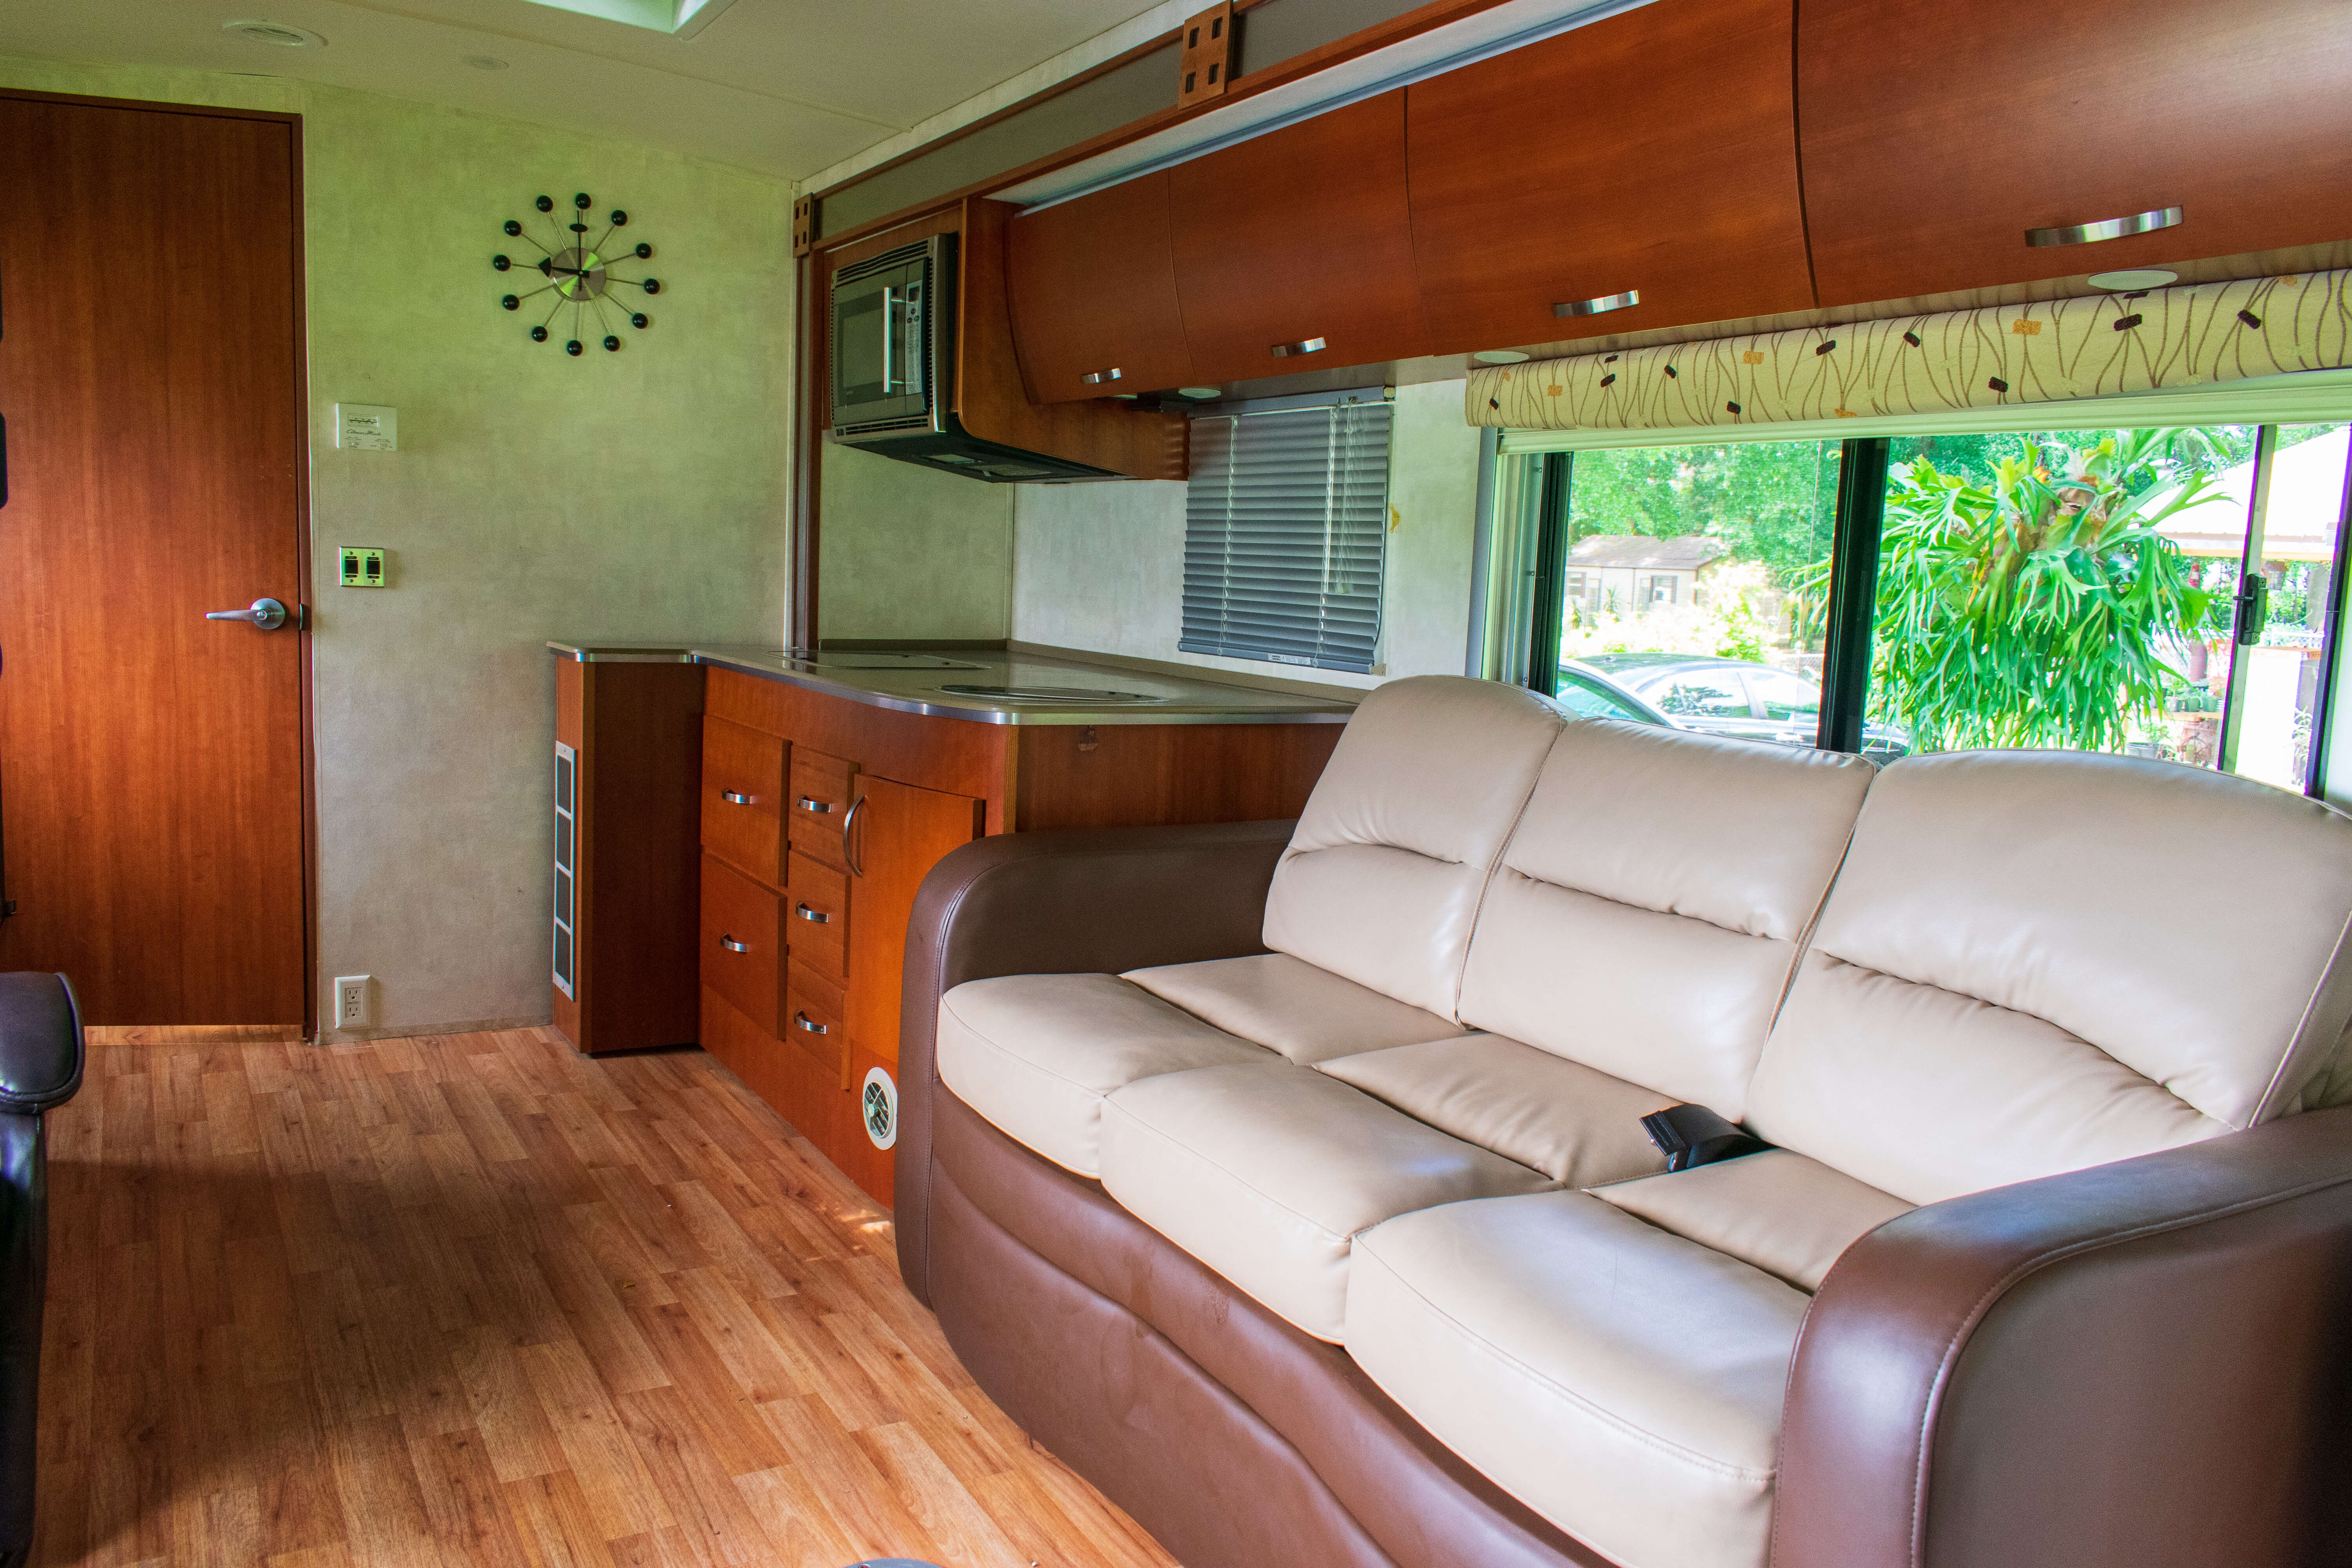 2010 Fleetwood Pulse 24S Living room and kitchen